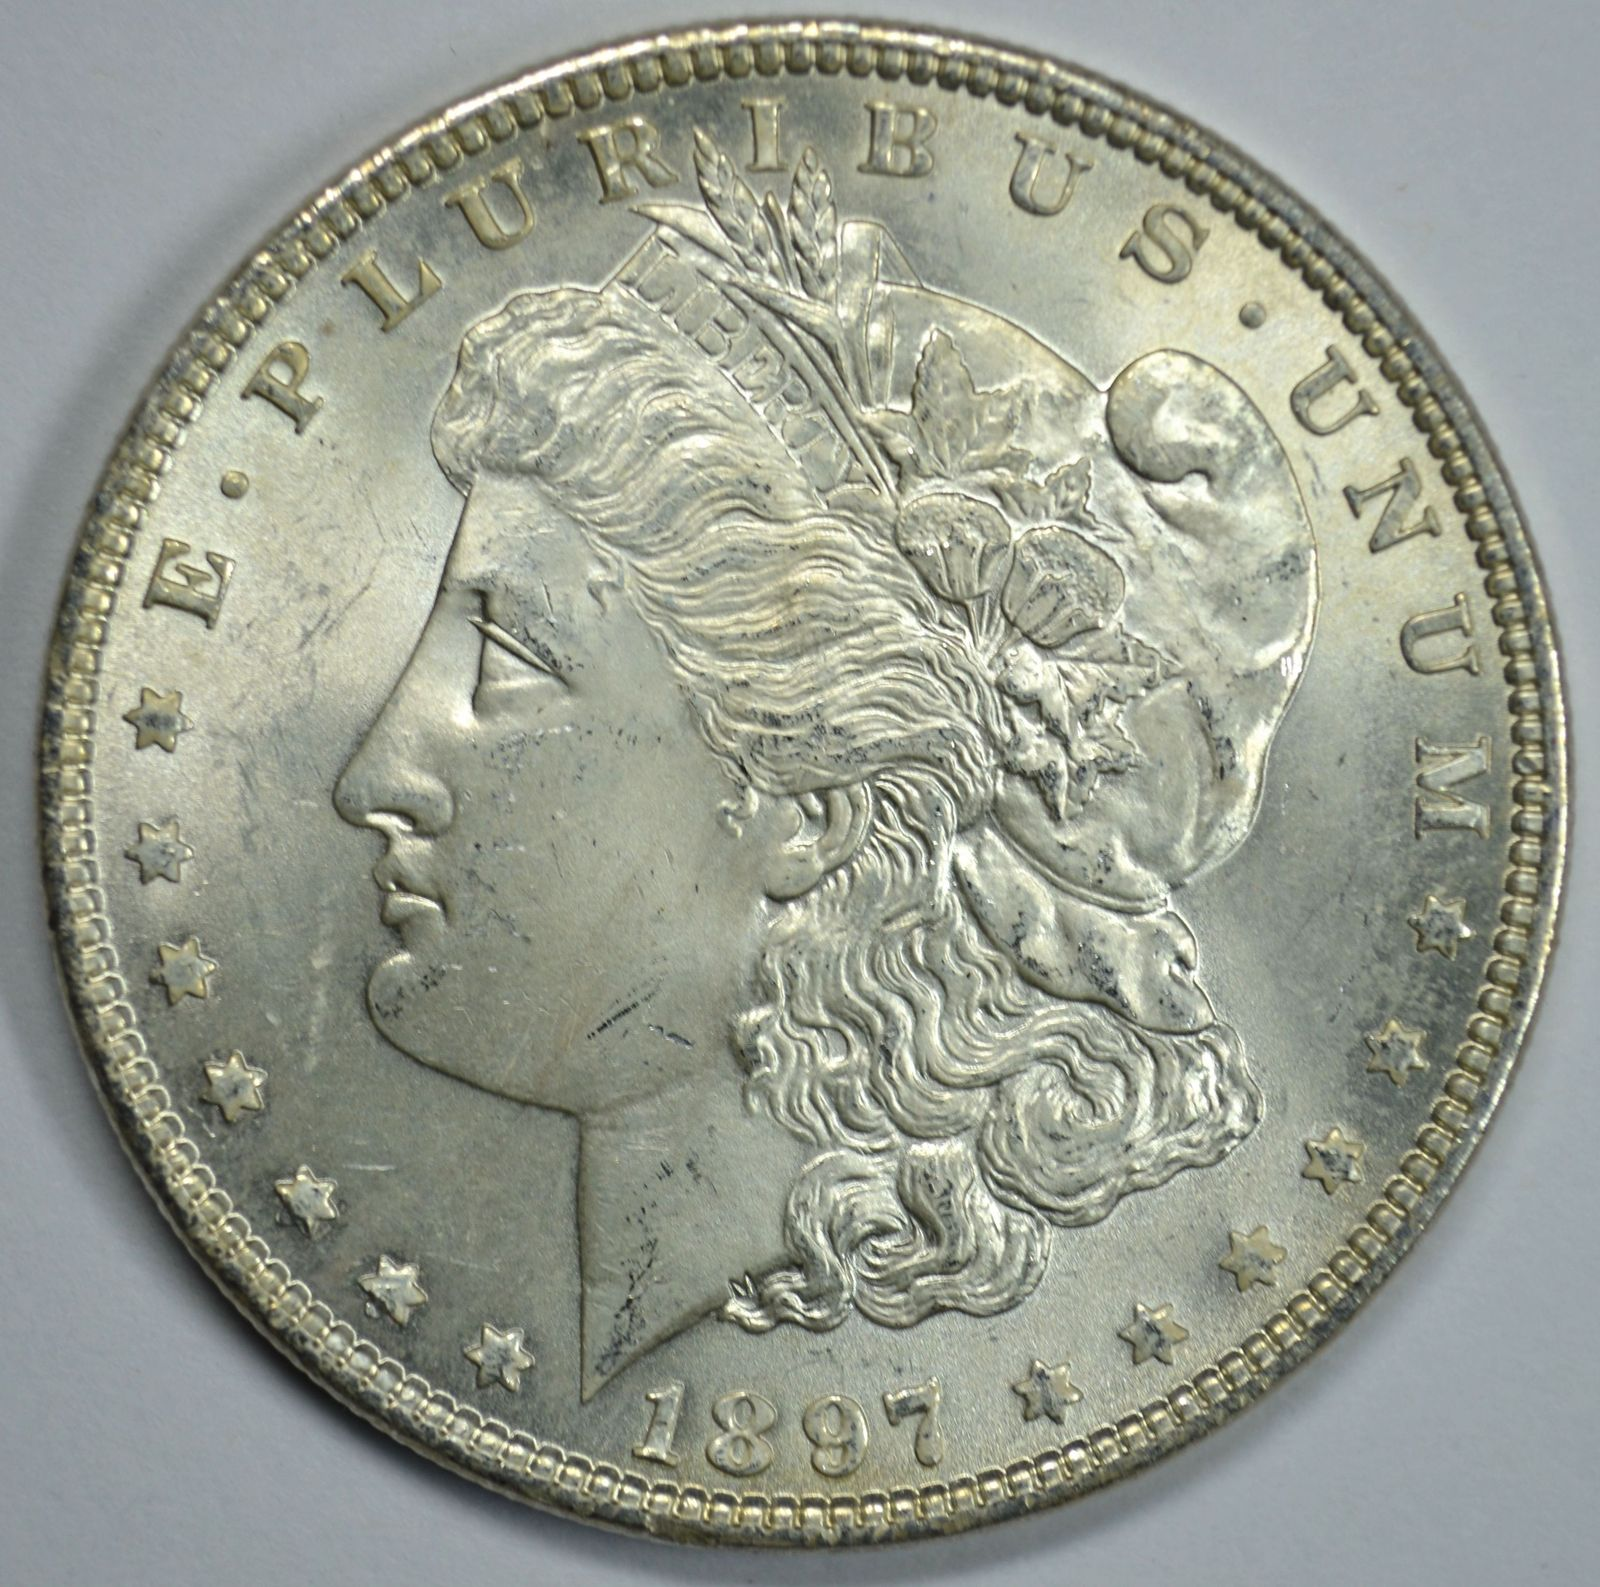 Primary image for 1897 P Morgan silver dollar BU detail Top 100 VAM - 6A Pitted Reverse Die Cracks